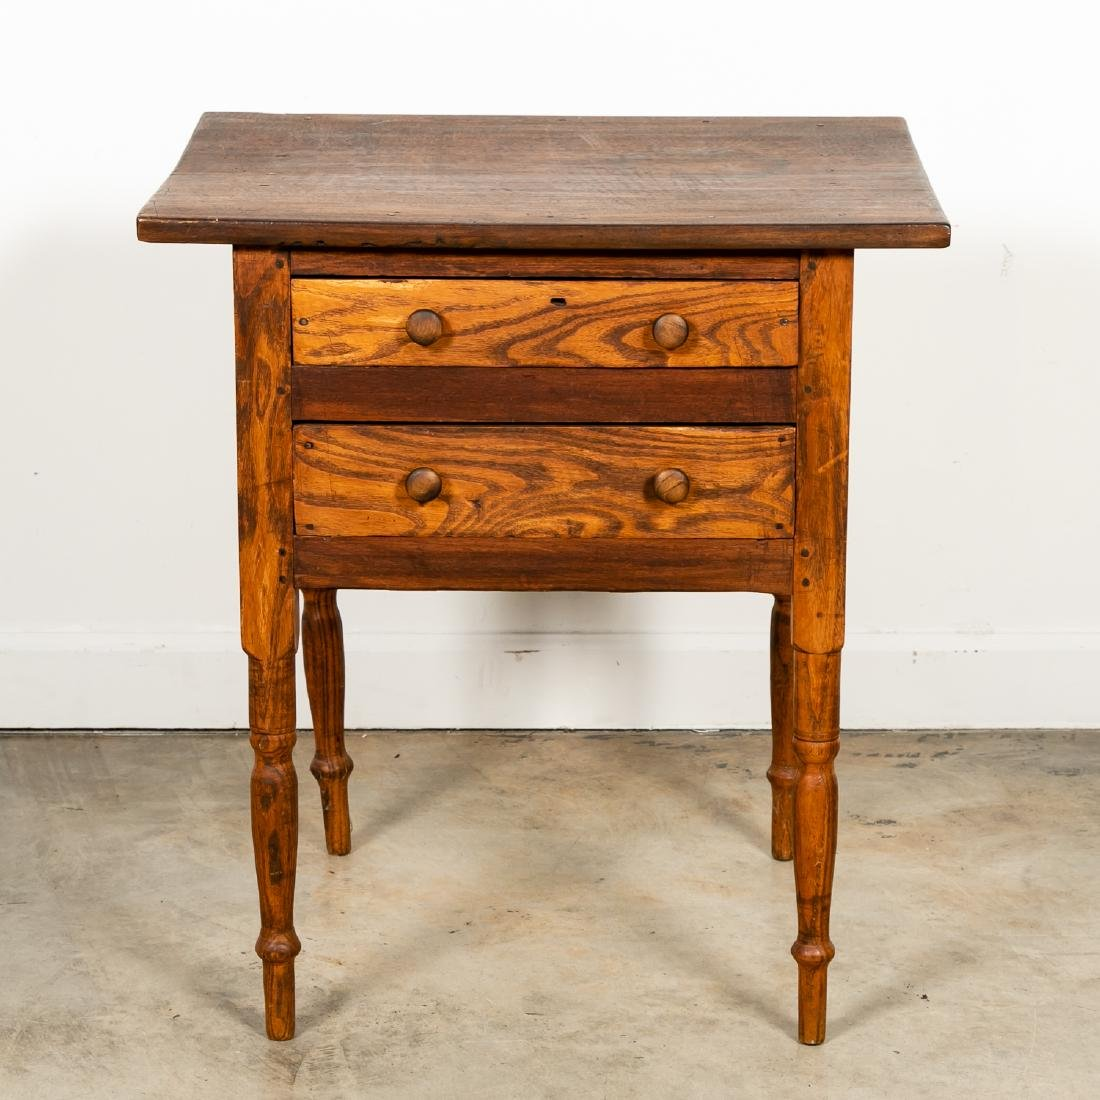 Early American Country Oak SideTable